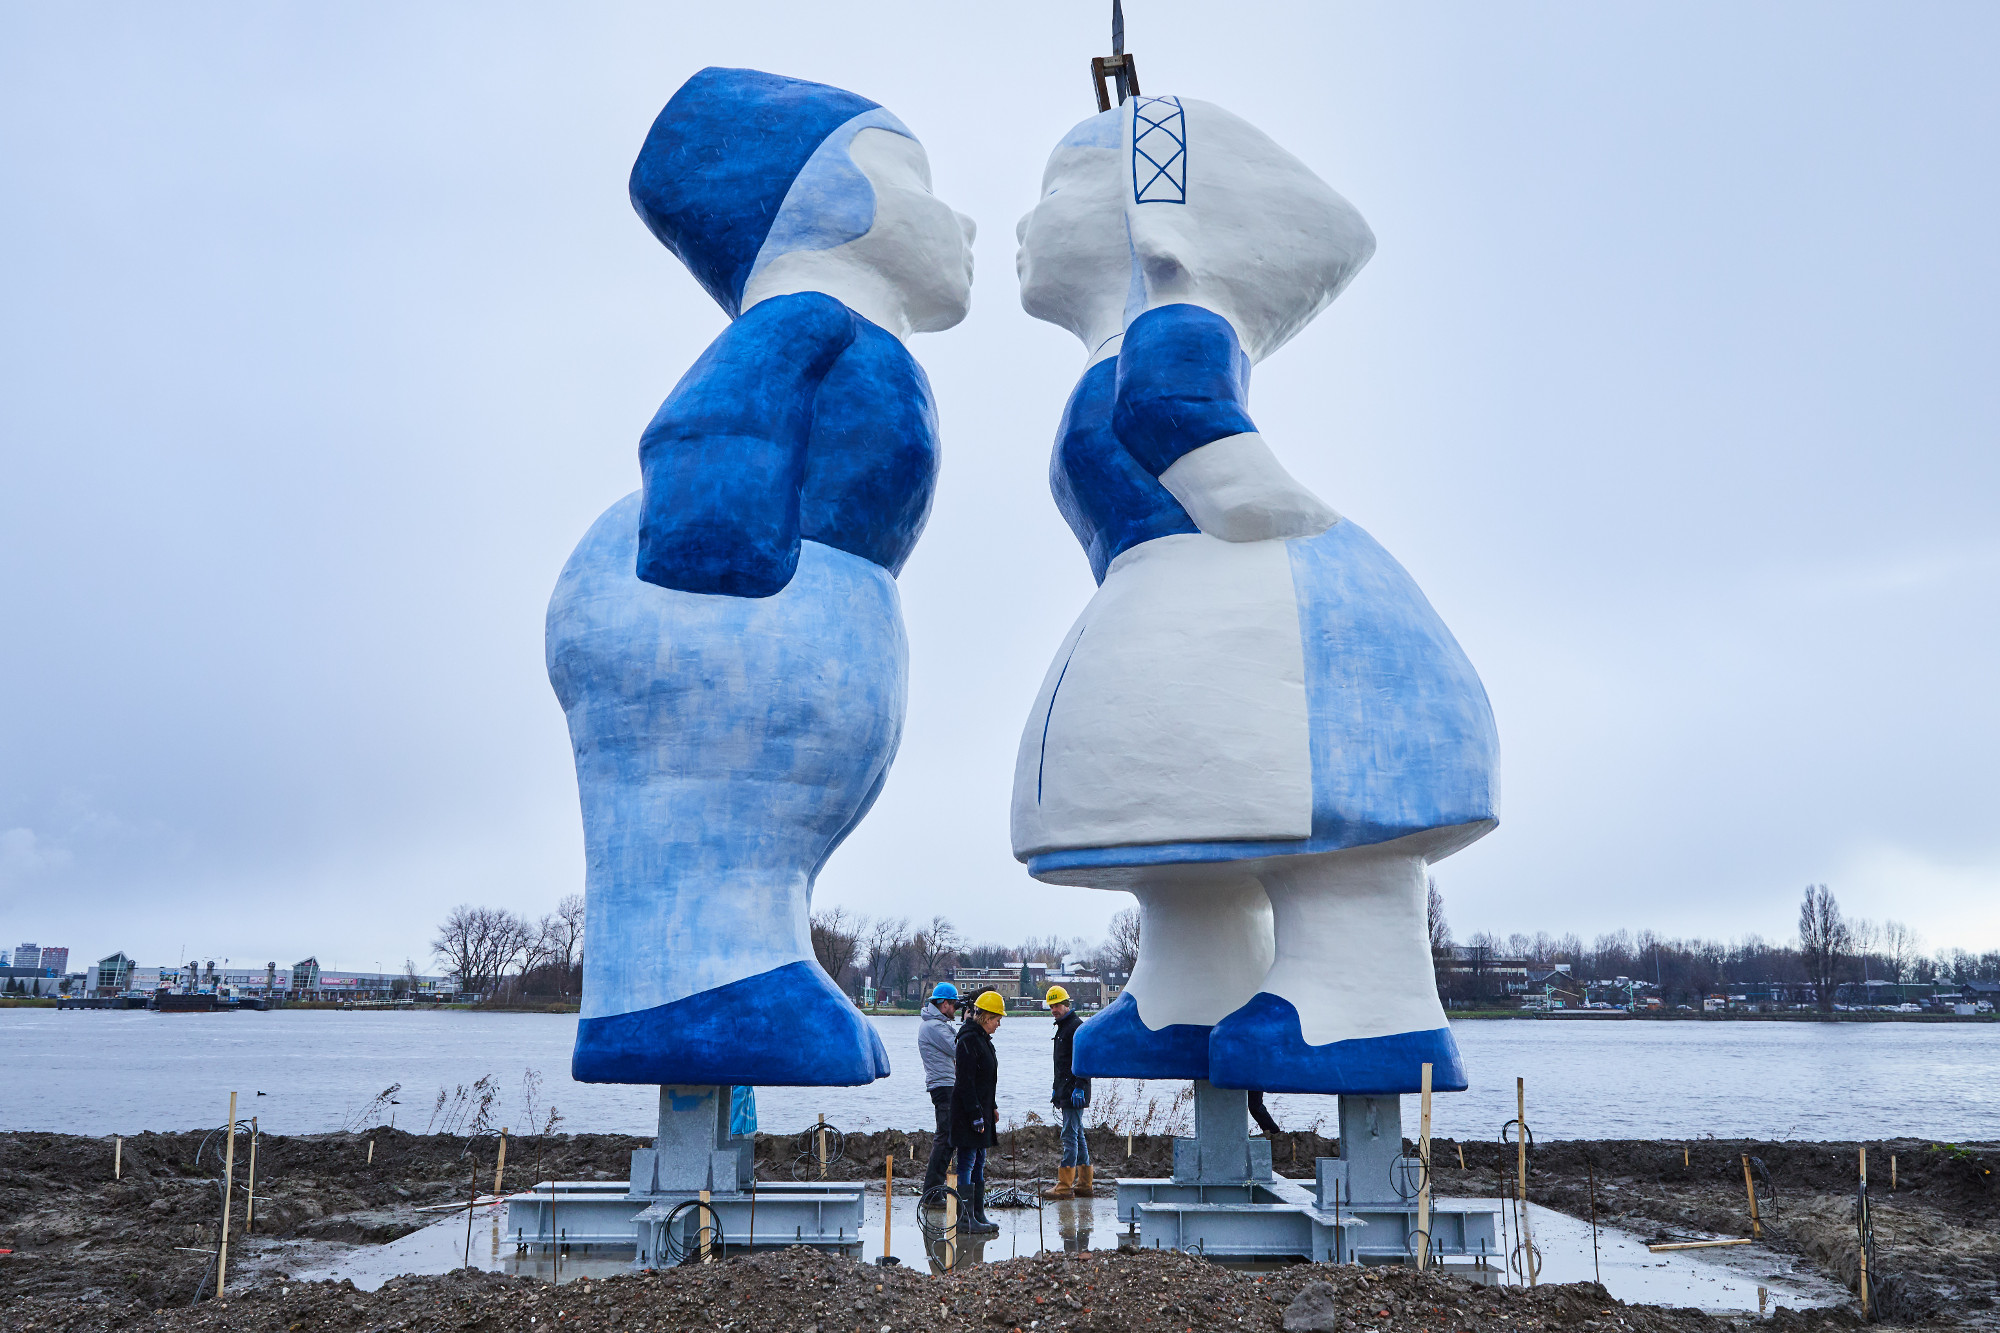 The Kissing Couple sculpture is installed in Amsterdam